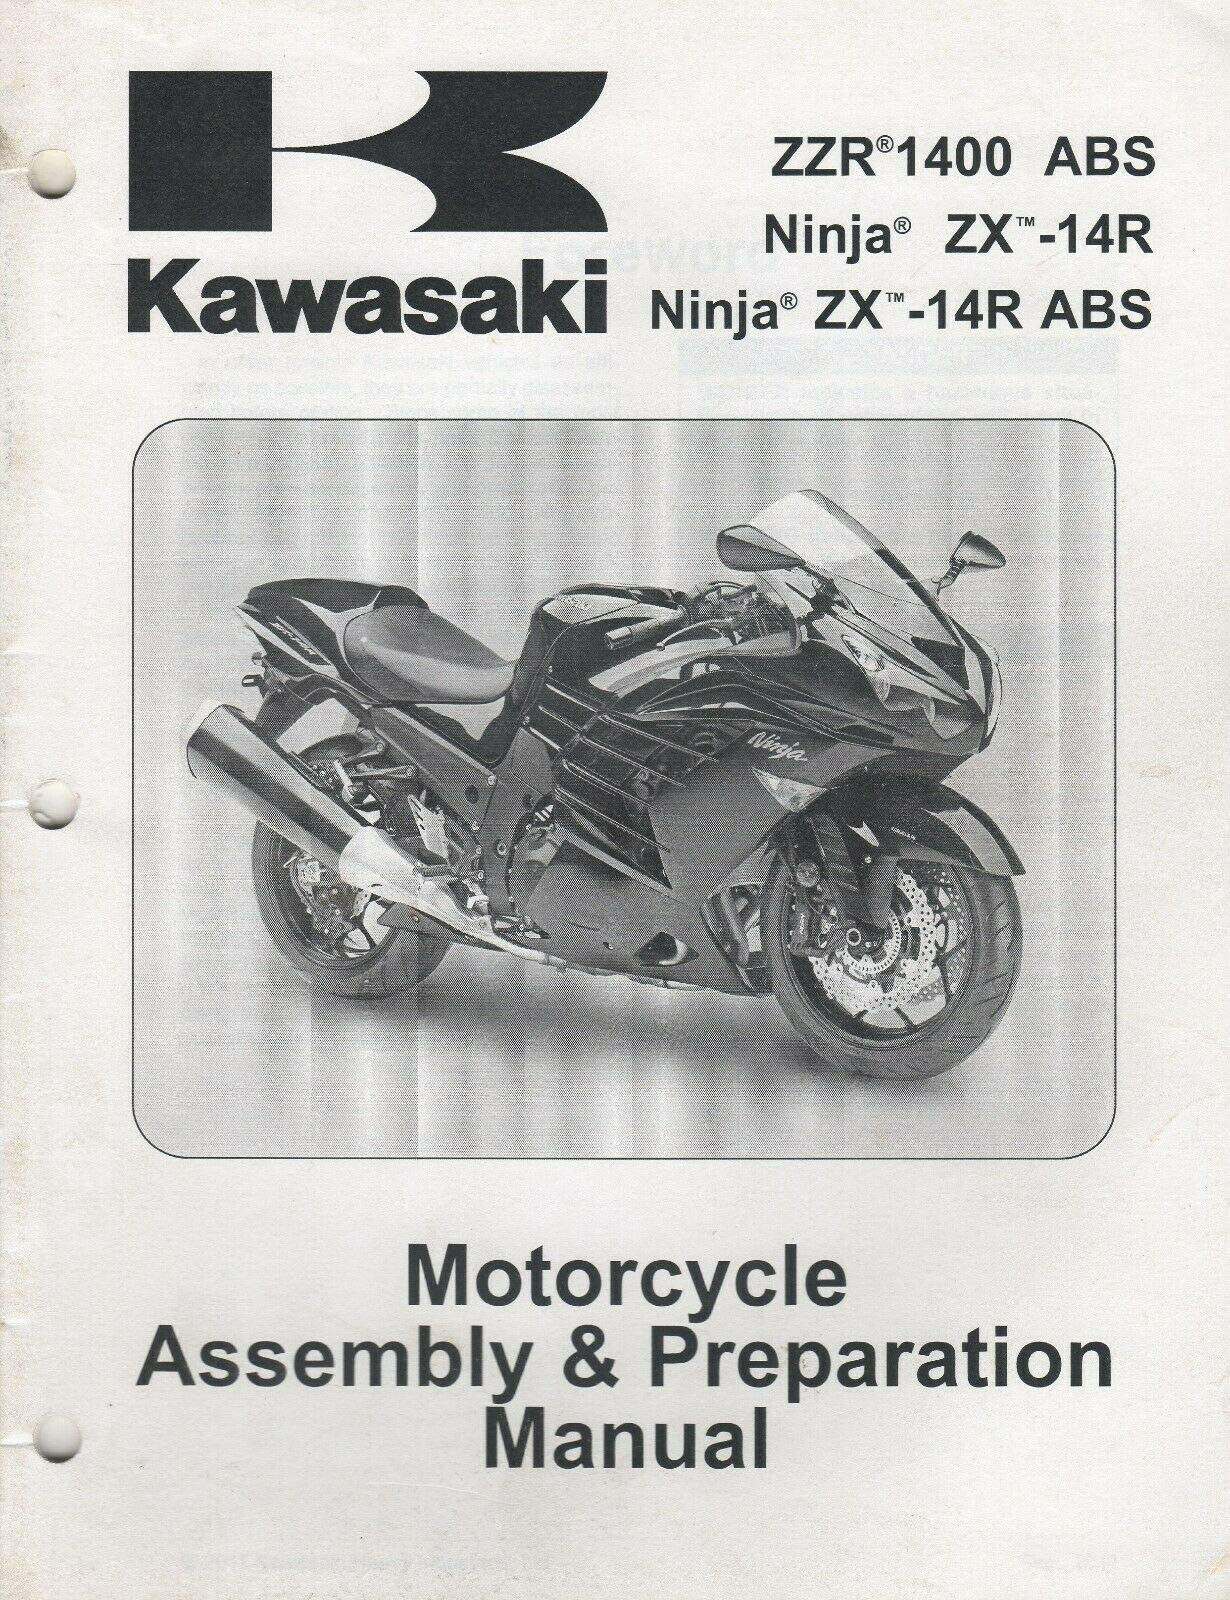 2012 KAWASAKI NINJA ZX-14R ASSEMBLY PREPARATION MANUAL 99931 ...